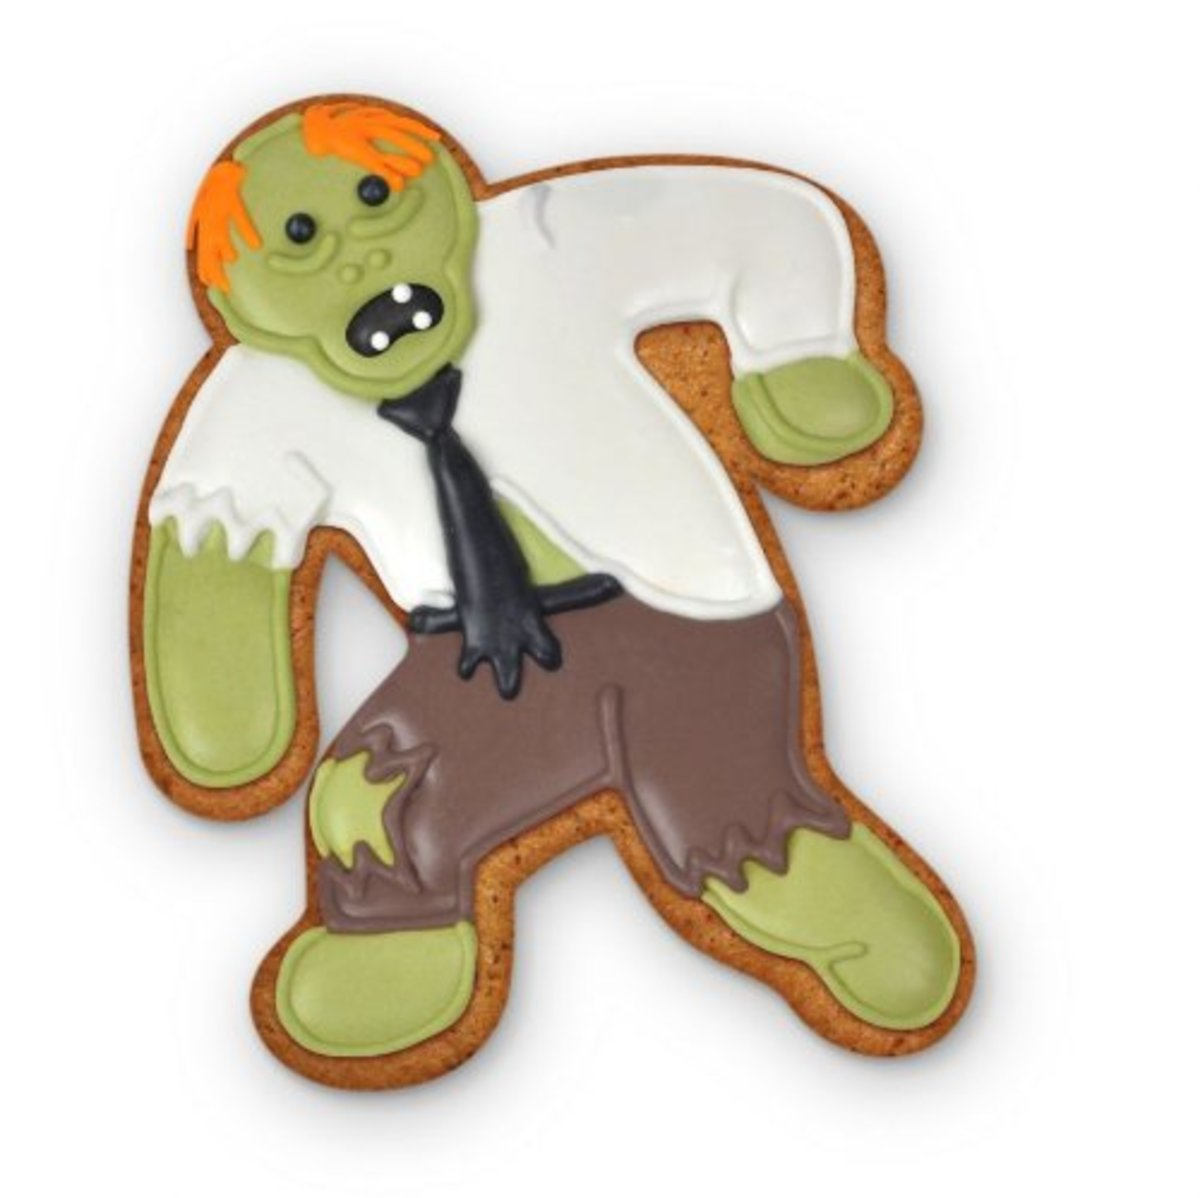 Undead Fred Zombie Shaped Cookie Cutters